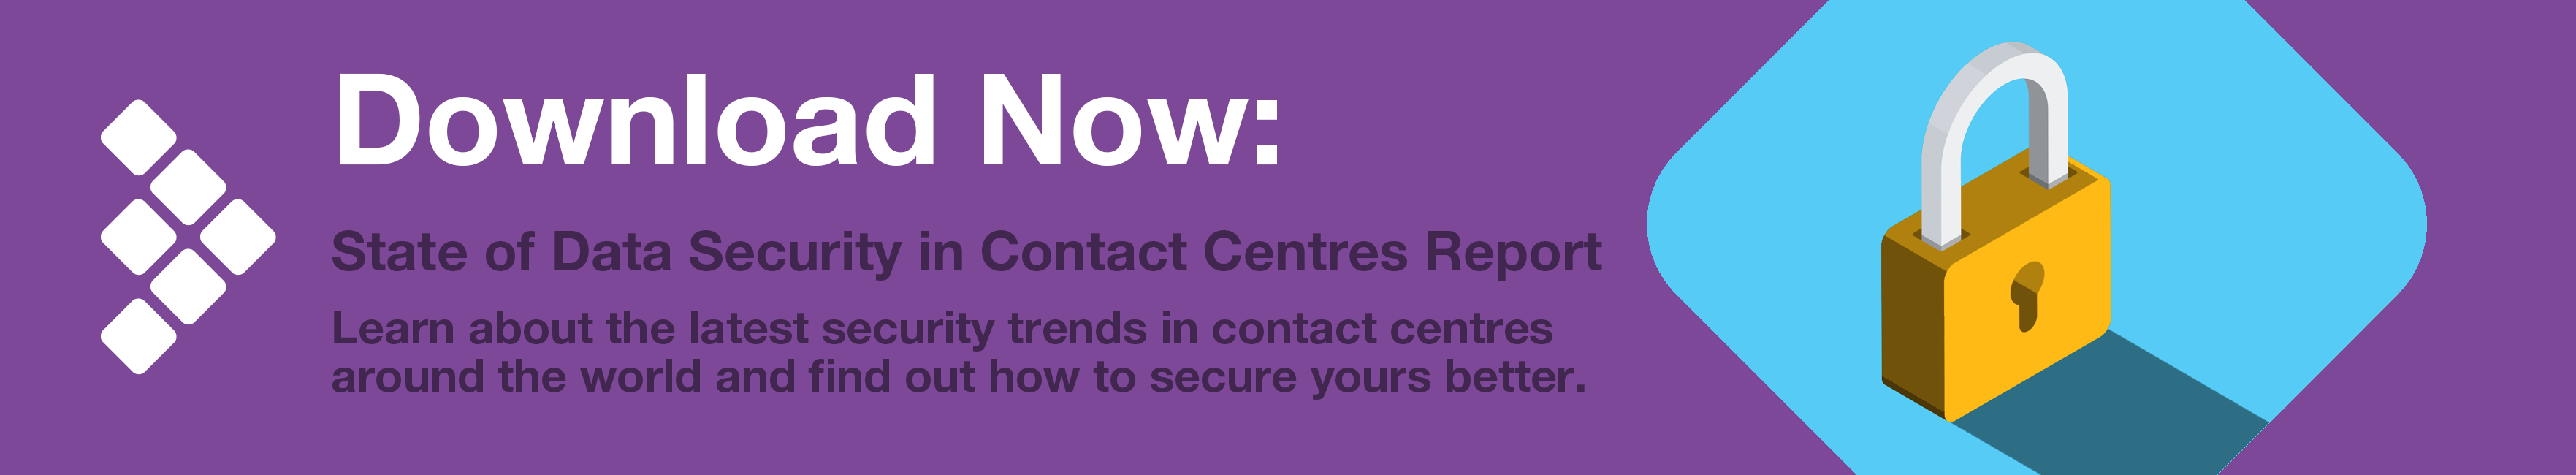 Download Now: State of Security in Contact Centres Report